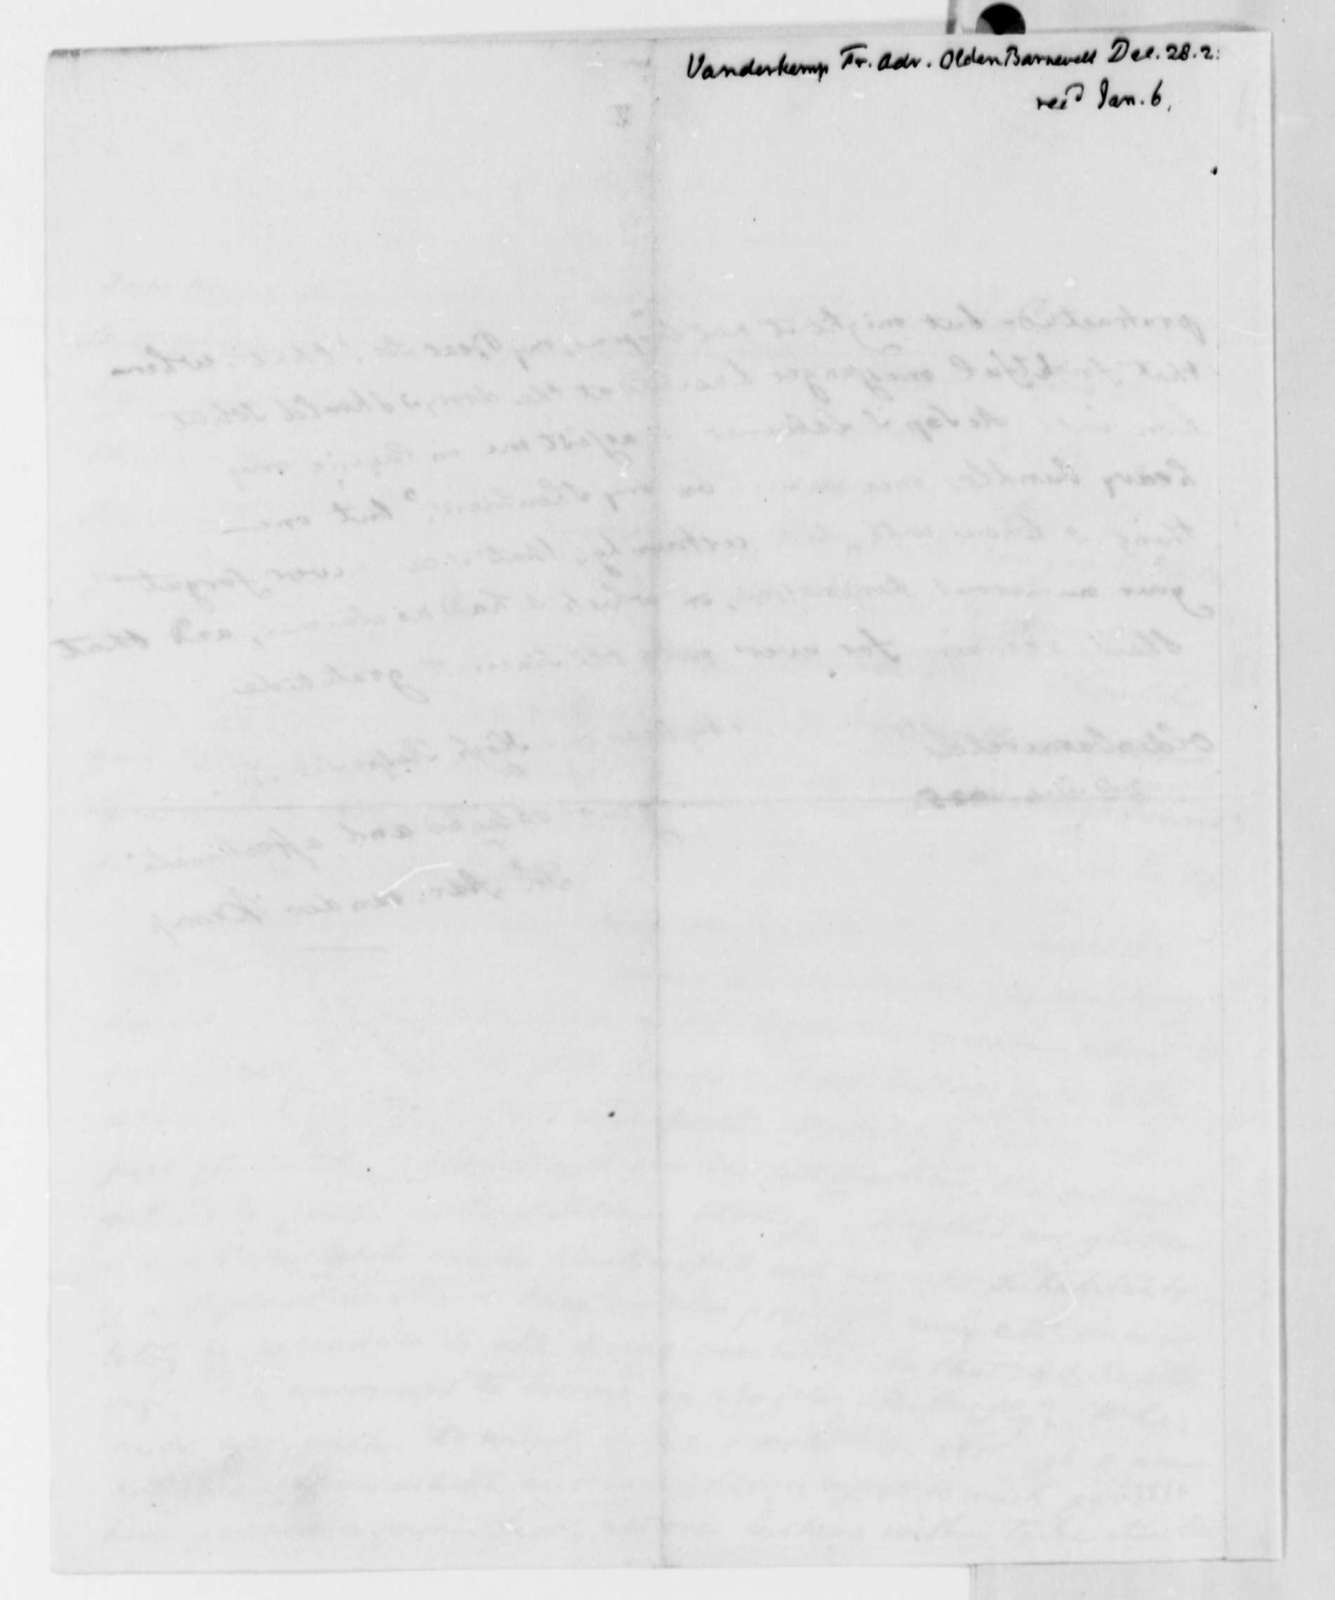 Francis A. van der Kemp to Thomas Jefferson, December 28, 1825